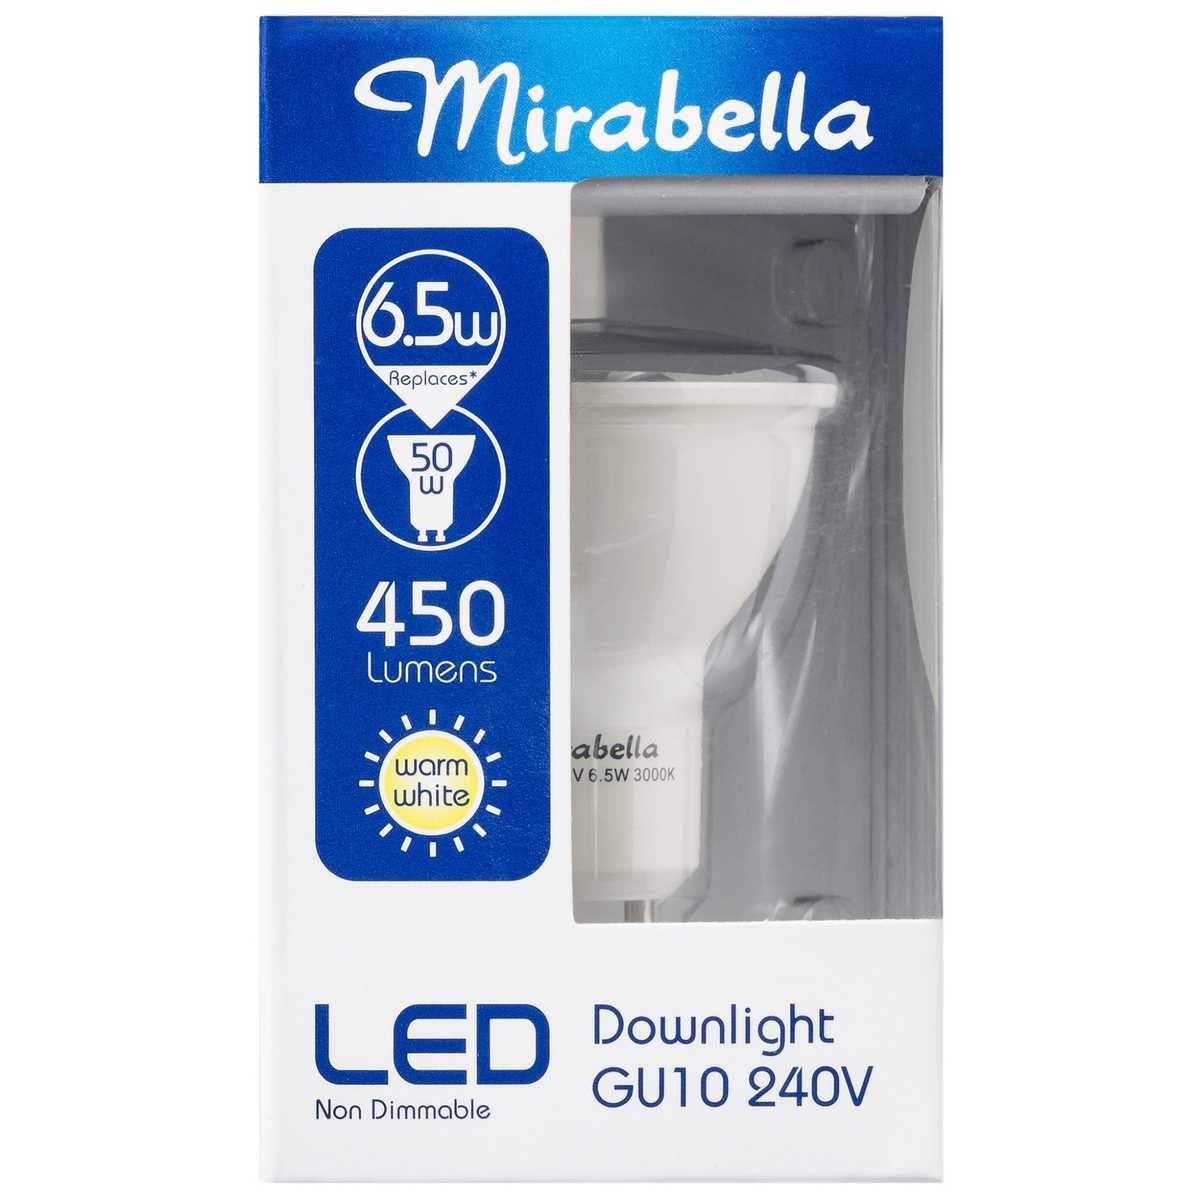 Led Downlights Au Mirabella Led Non Dimmable Gu10 Downlight Big W